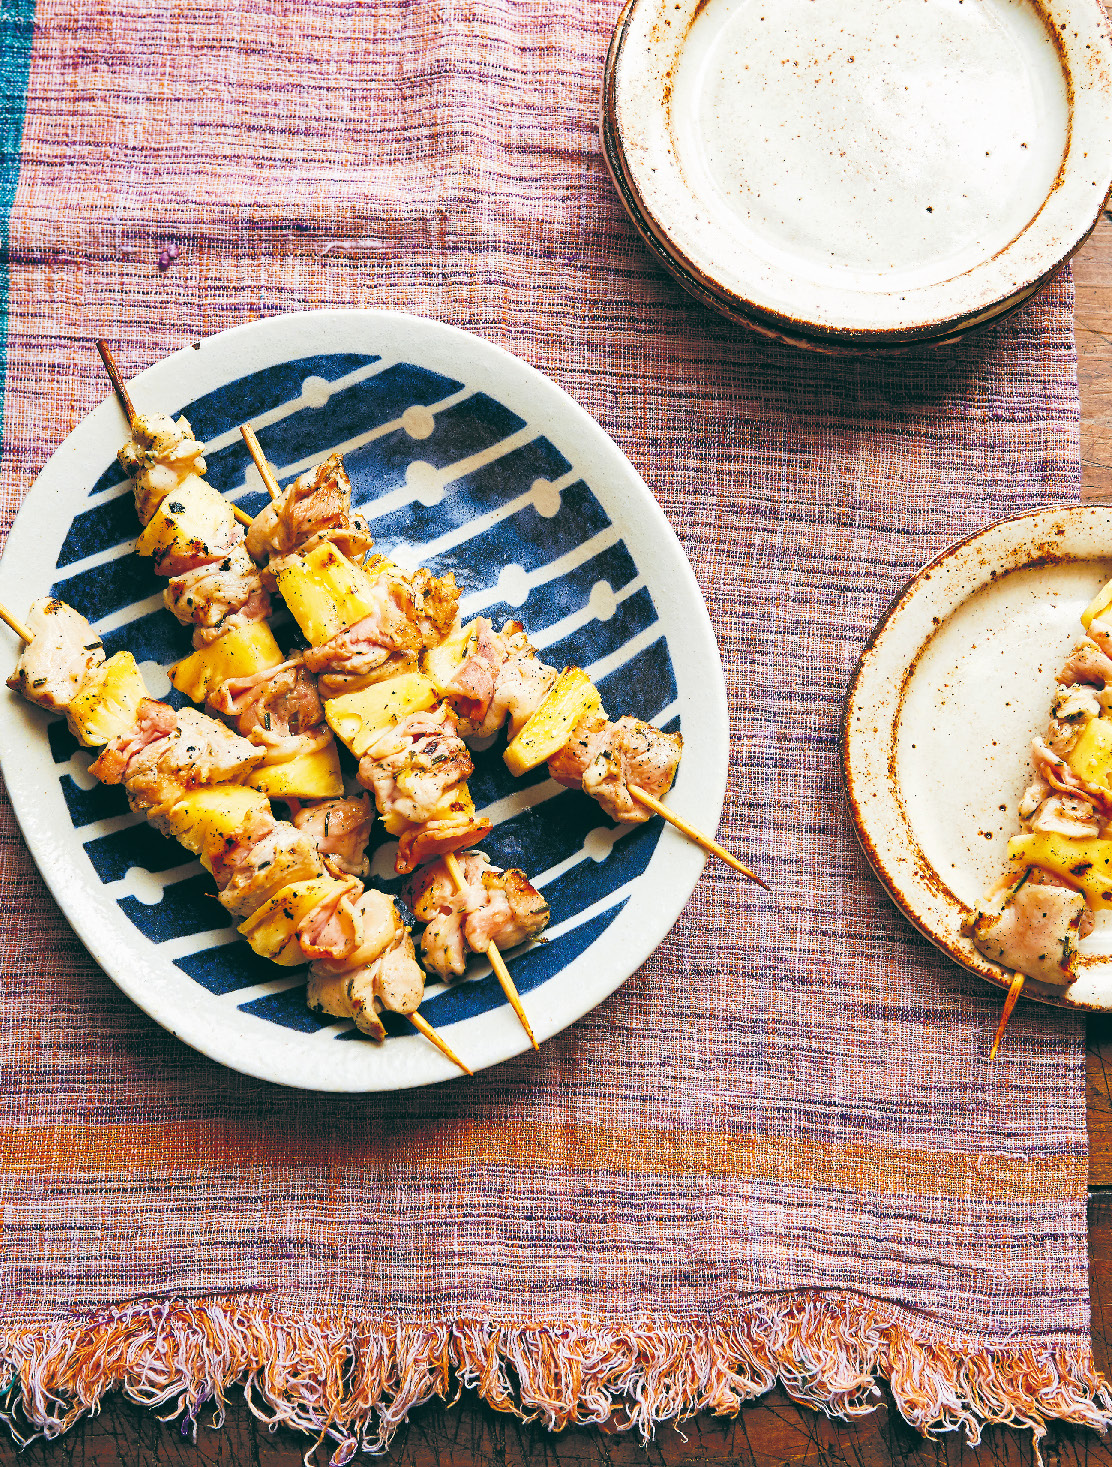 Chicken, pineapple & bacon skewers